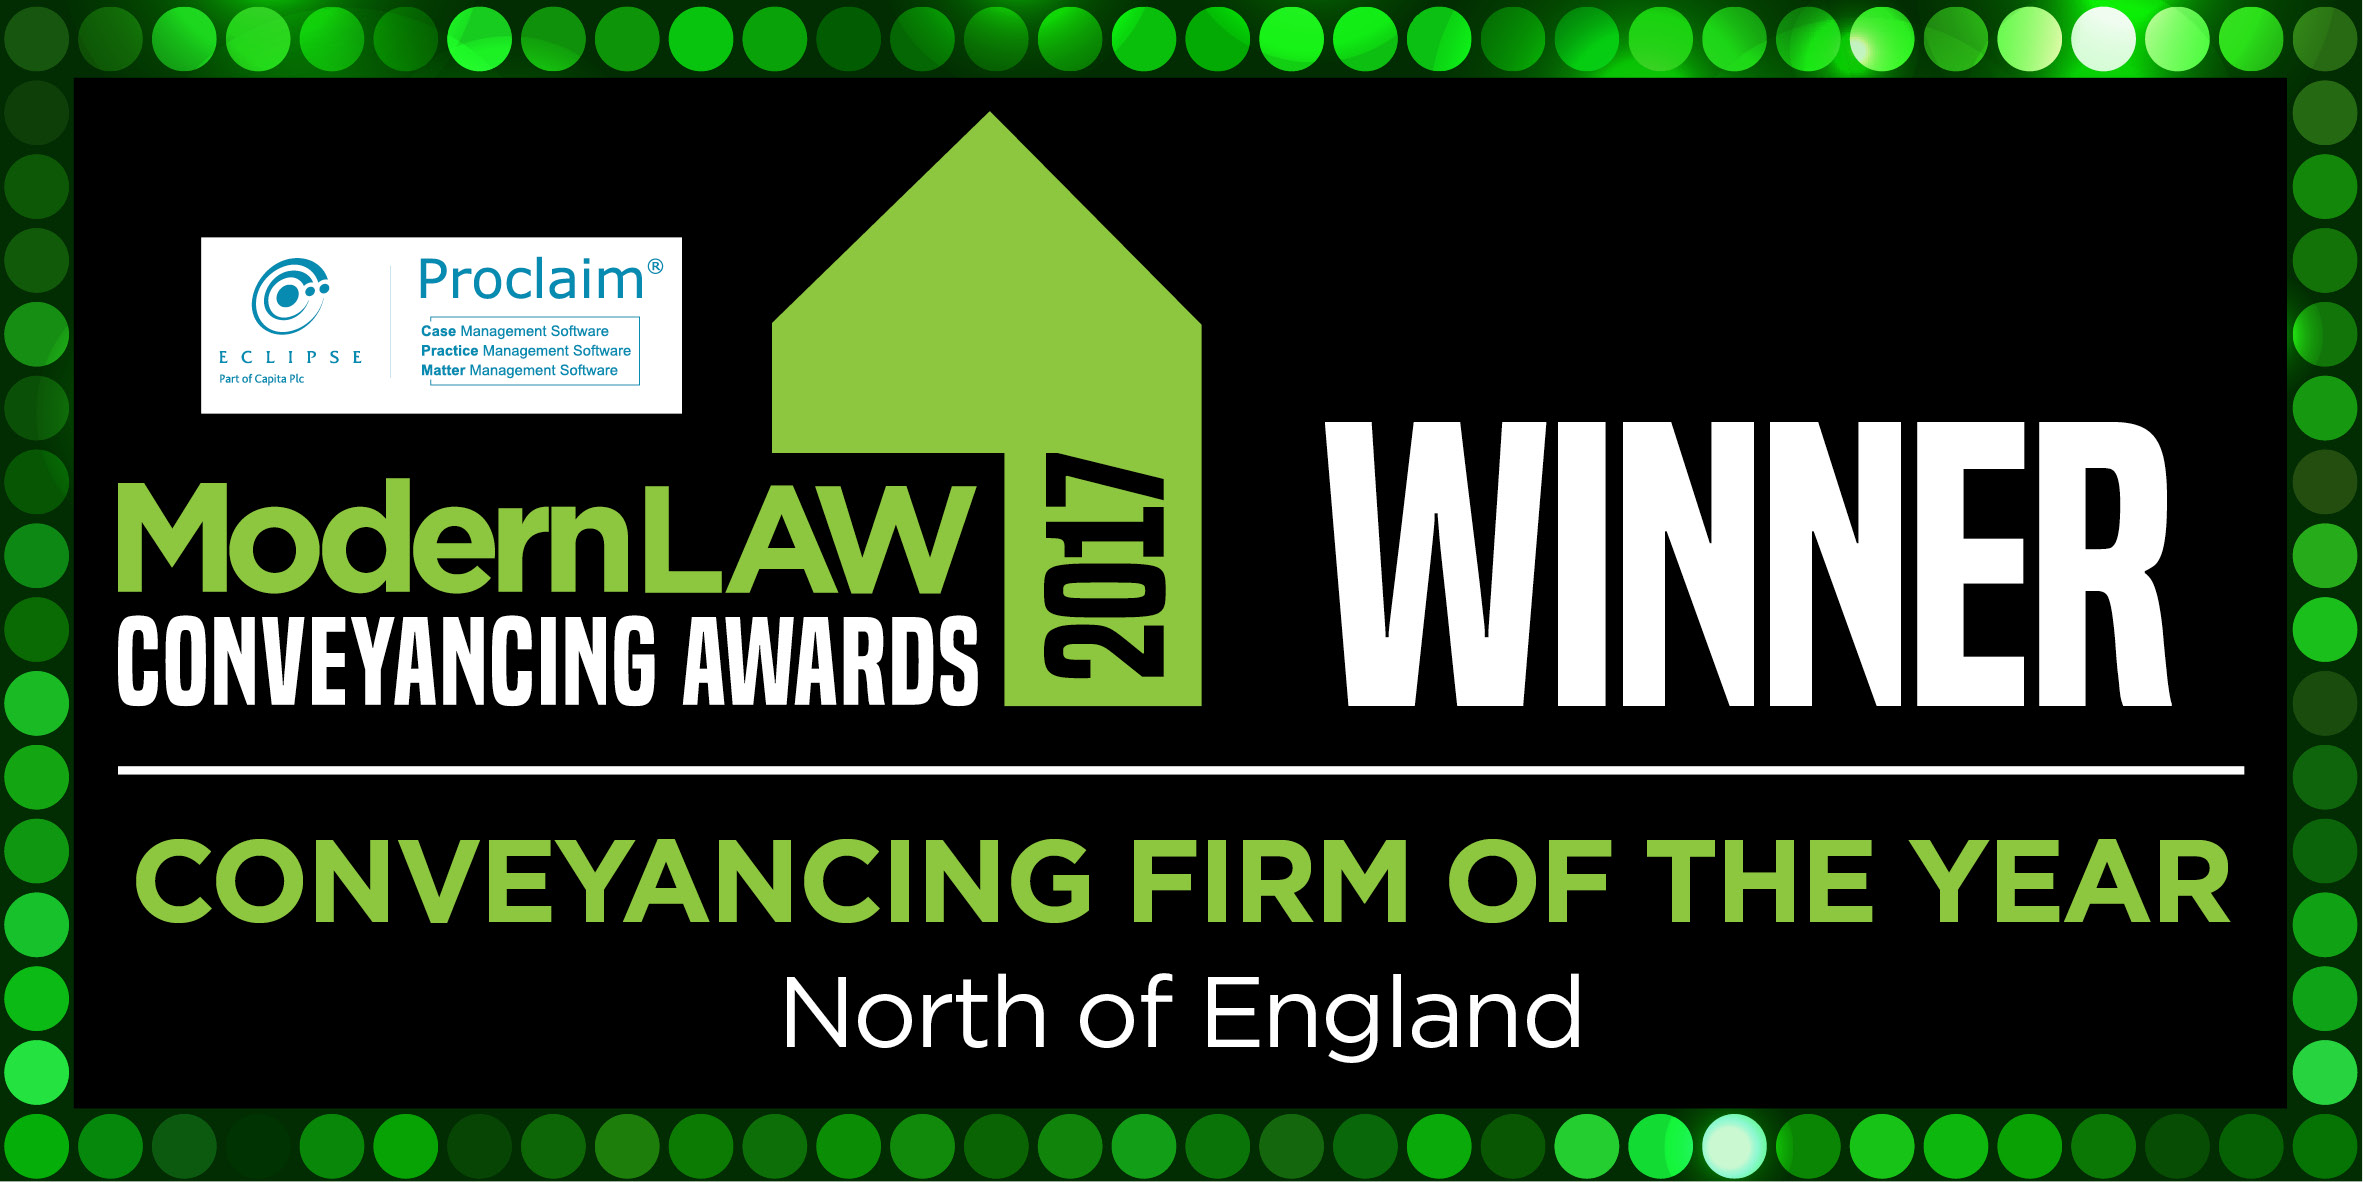 Birchall Blackburn Law become Modern Law Conveyancing Winners